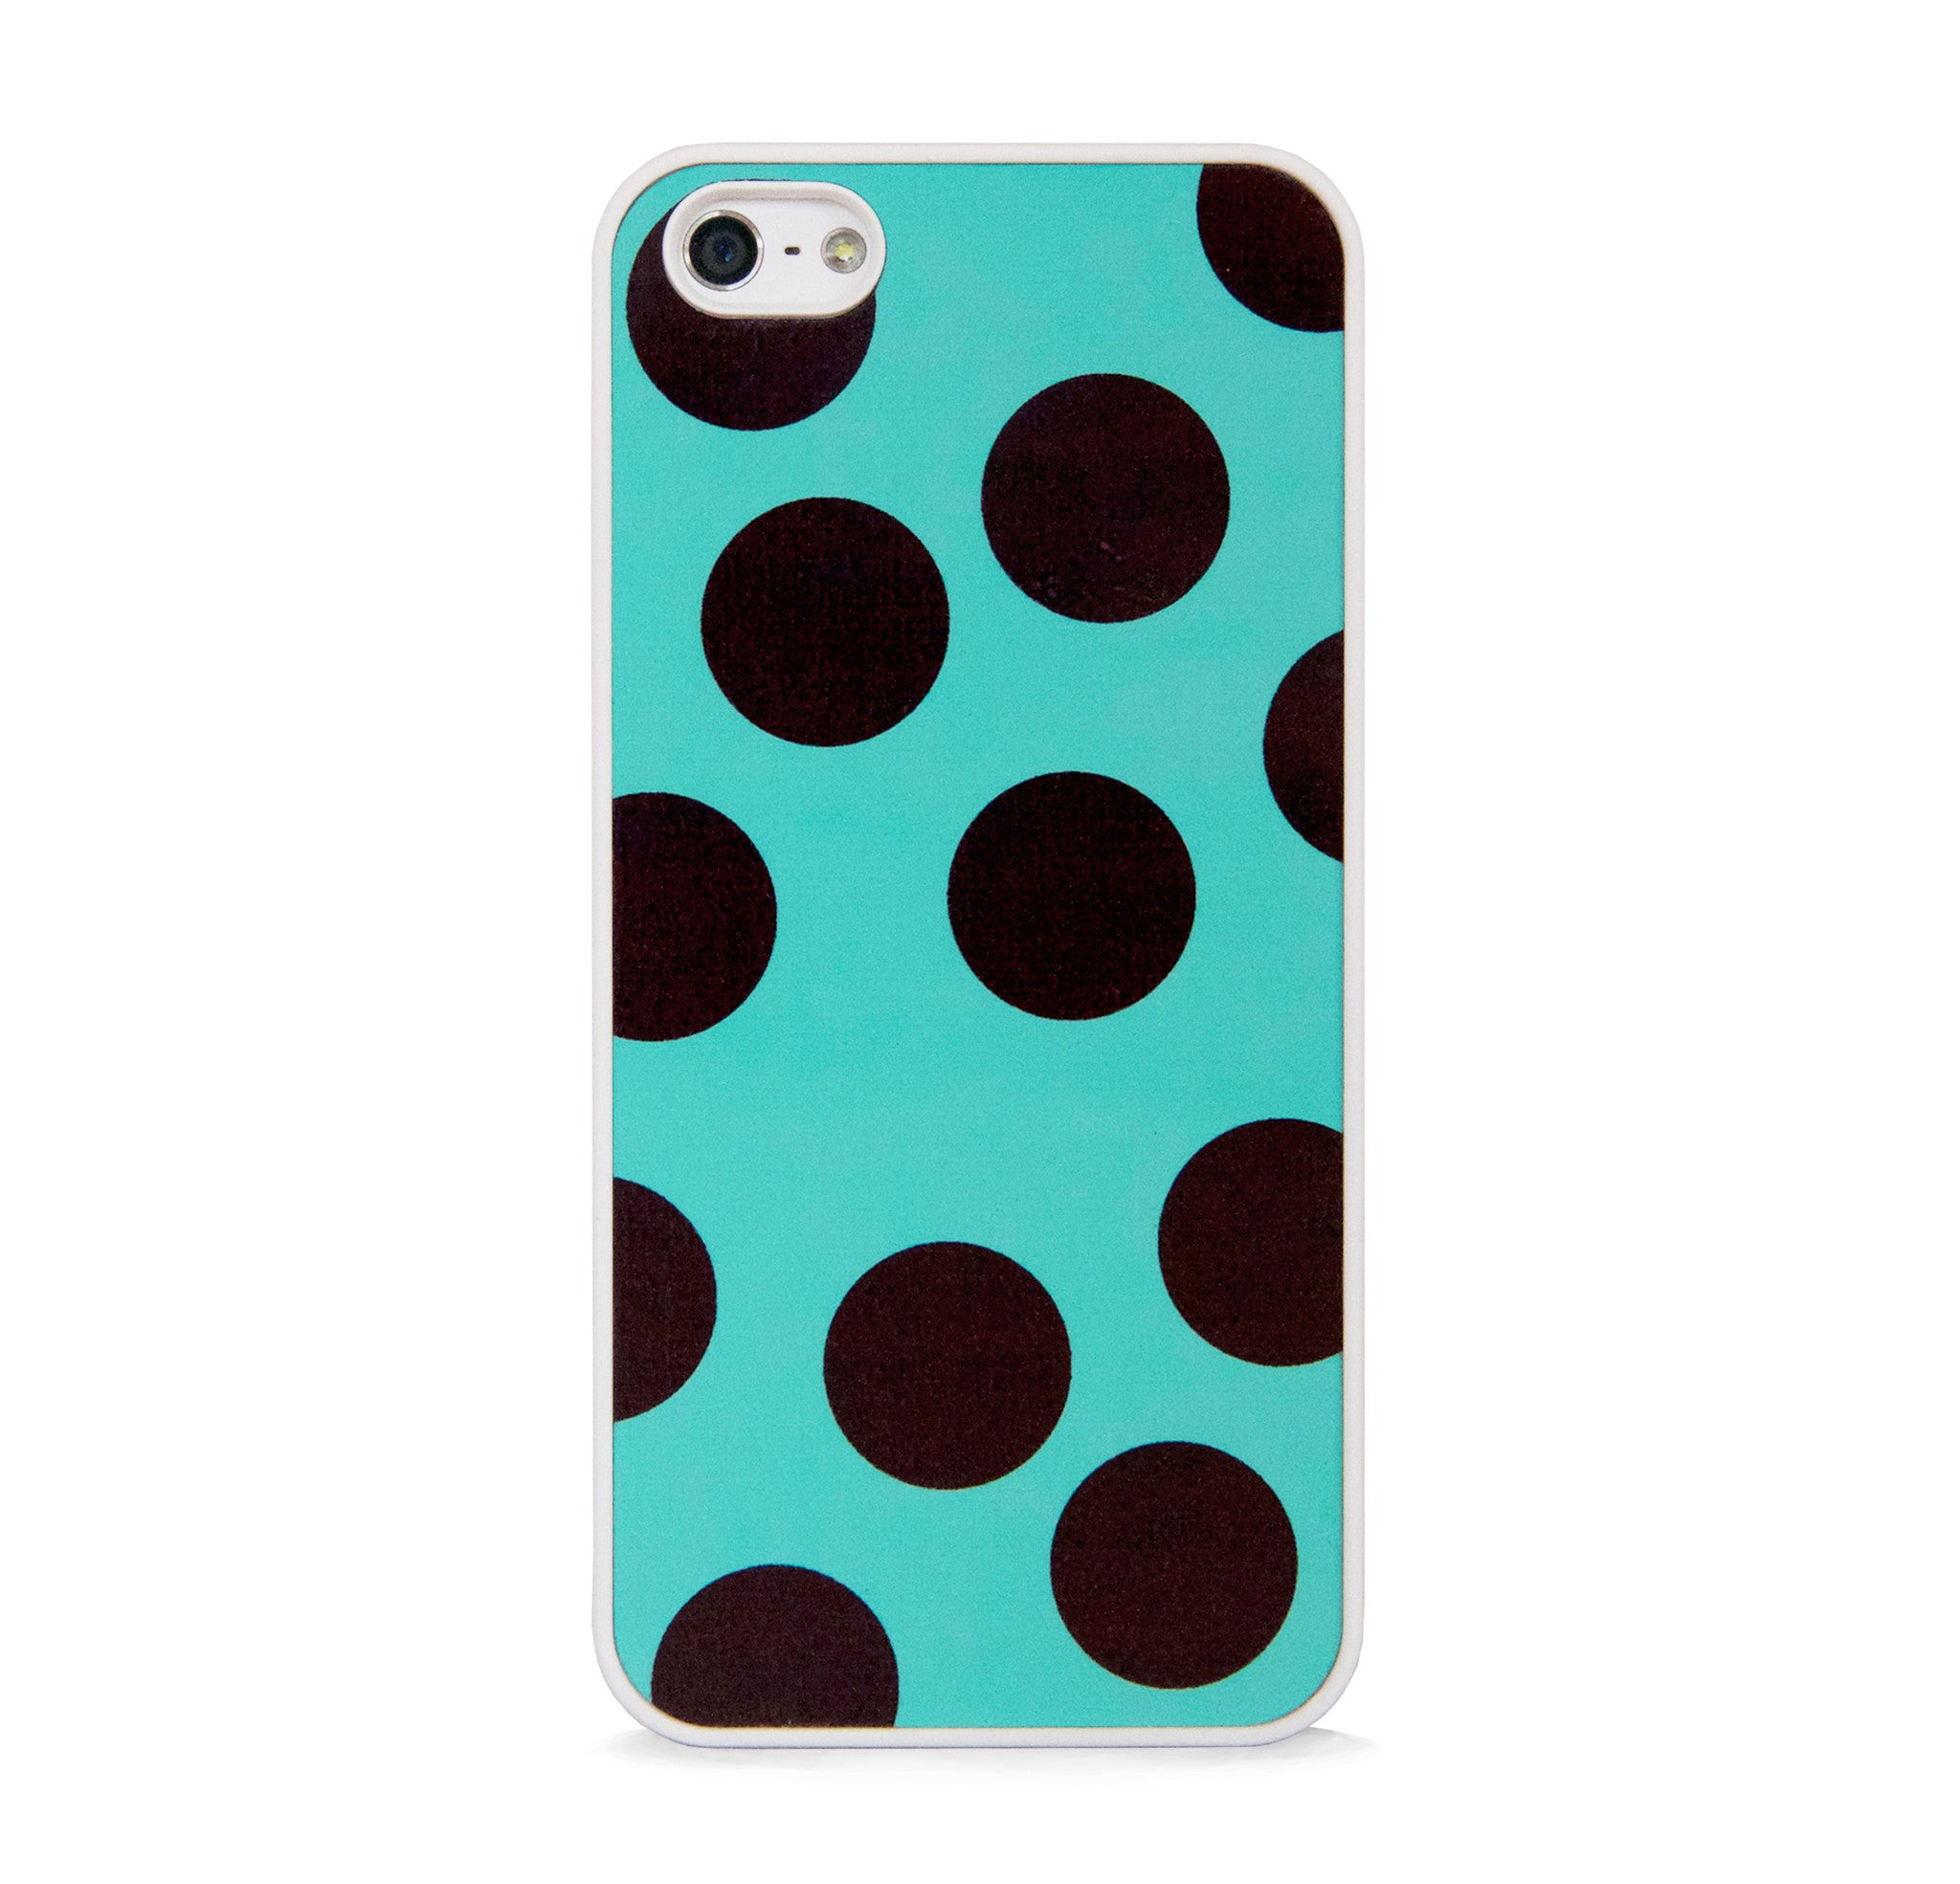 BIG POLKA DOTS ON MINT FOR IPHONE 5/5S